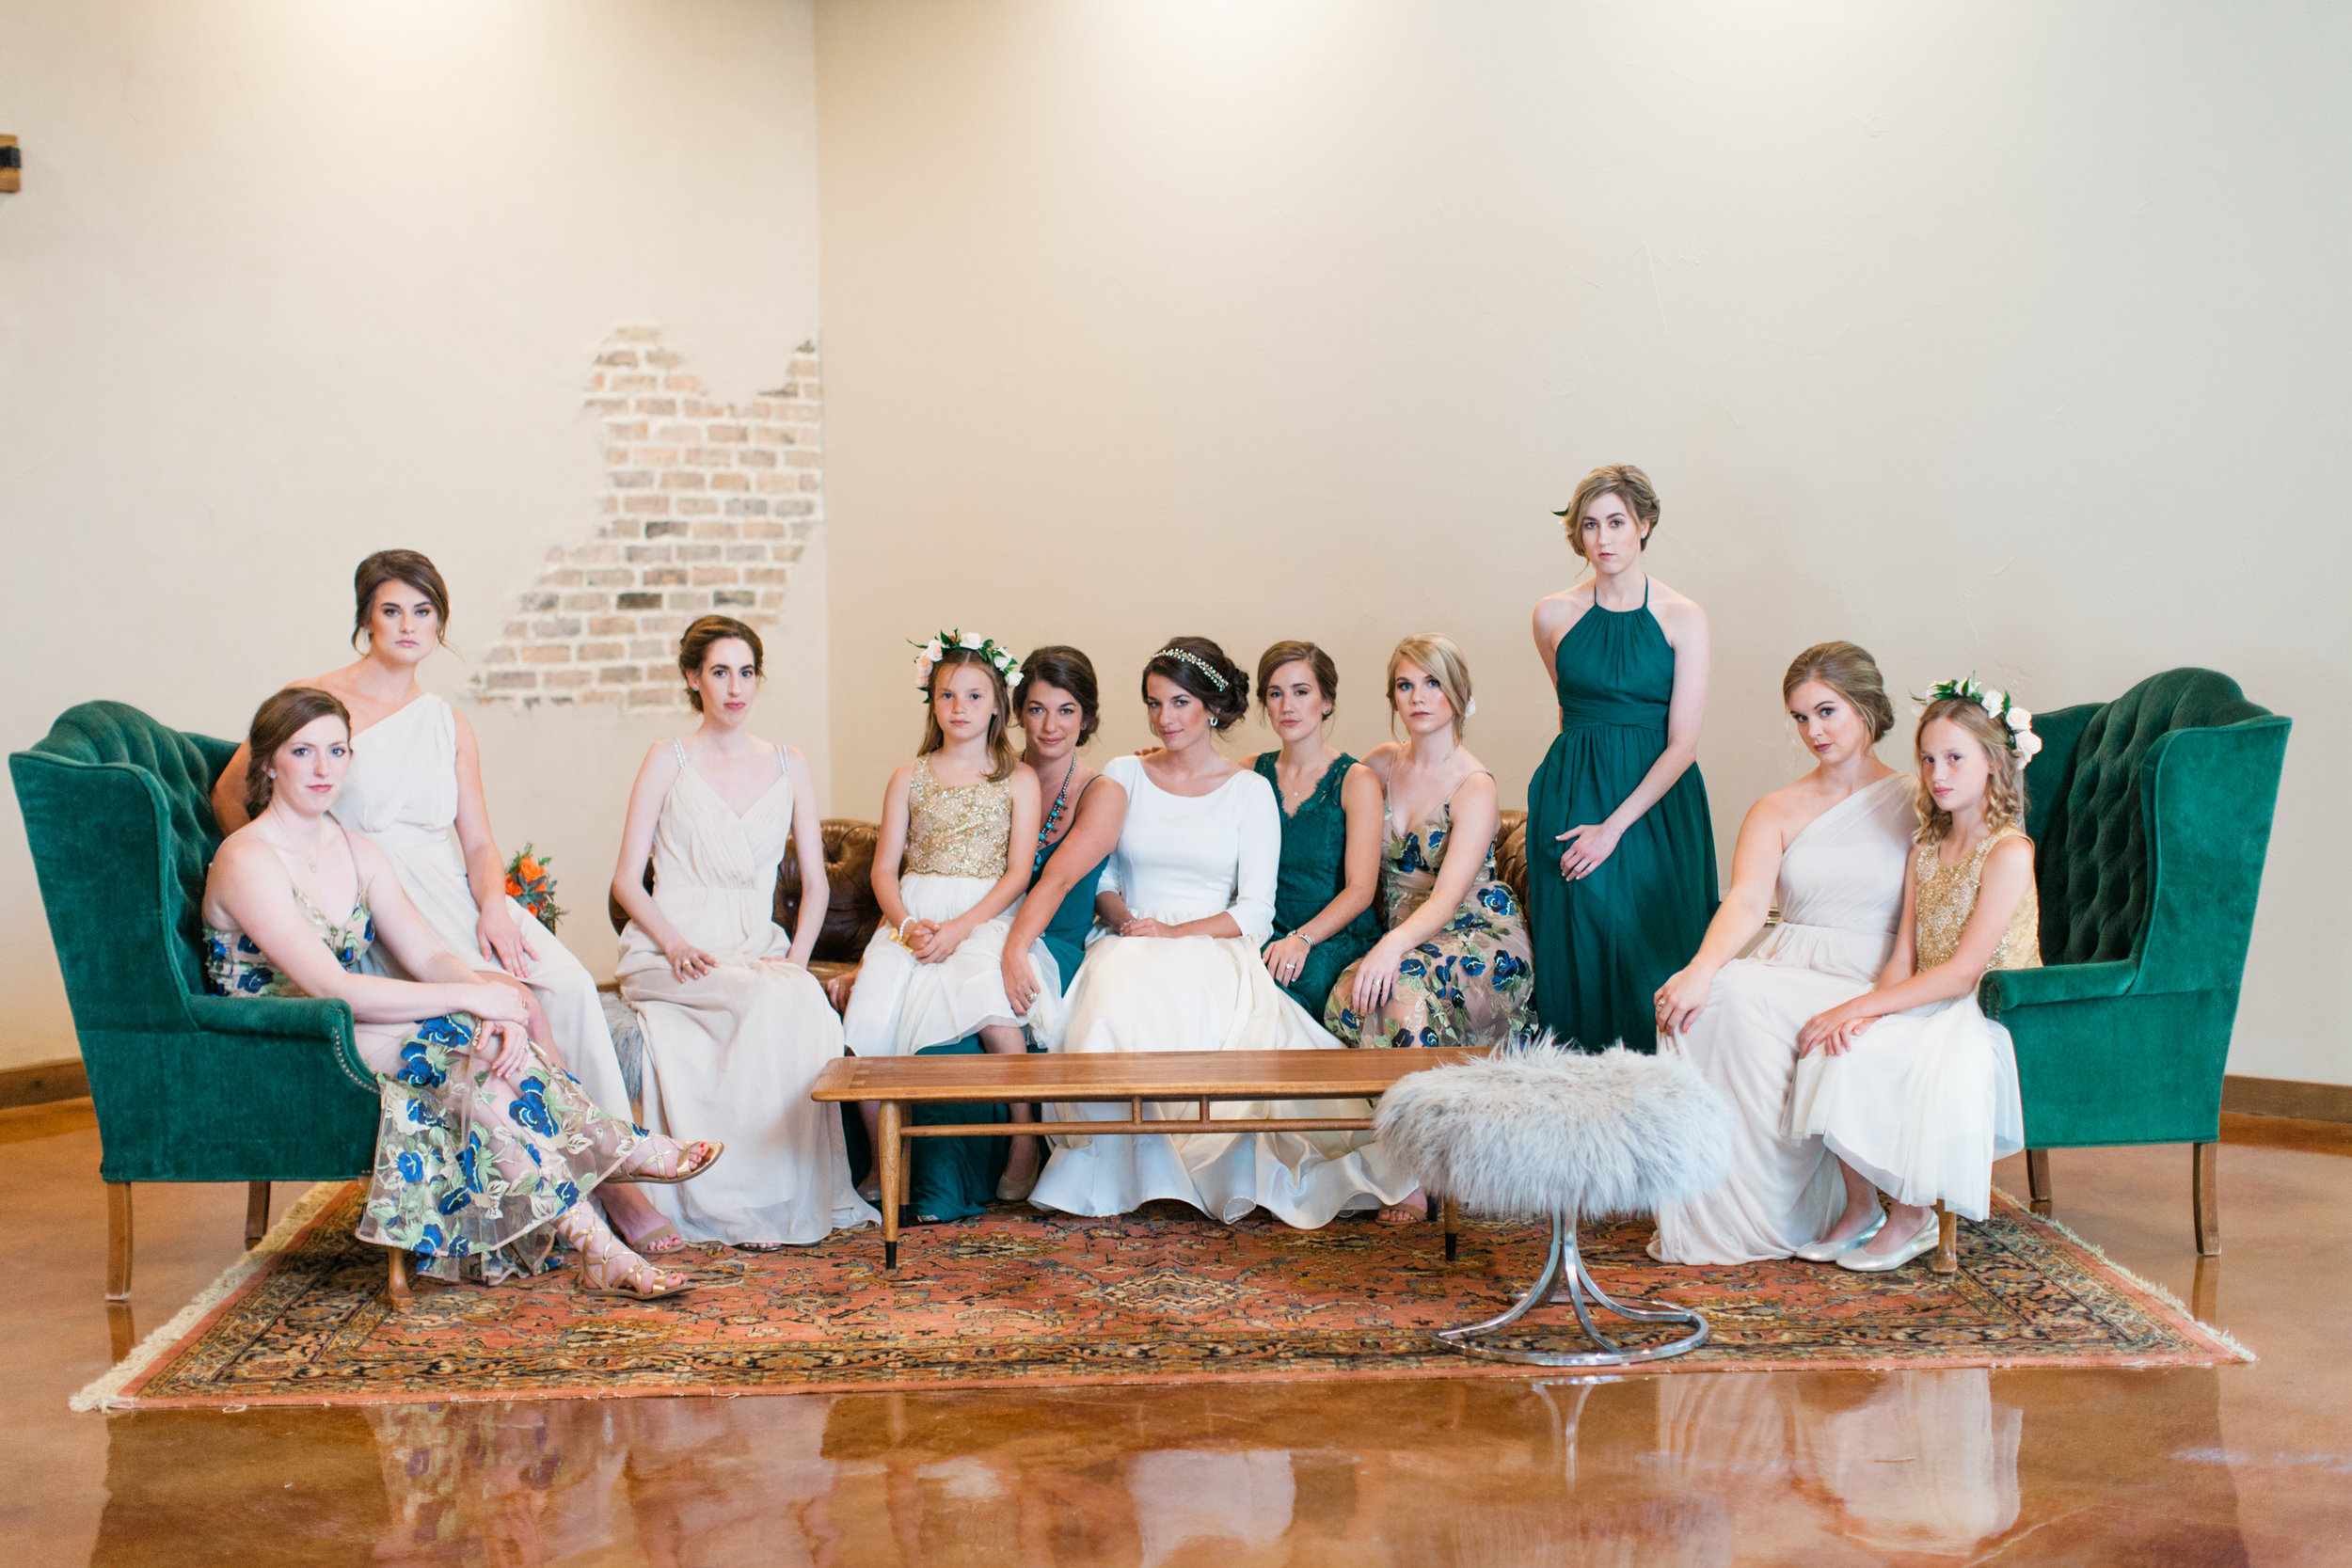 Our lounge is the perfect backdrop for this beautiful bridal party photo. The emerald green tufted chairs and the bridesmaid dresses, seriously!